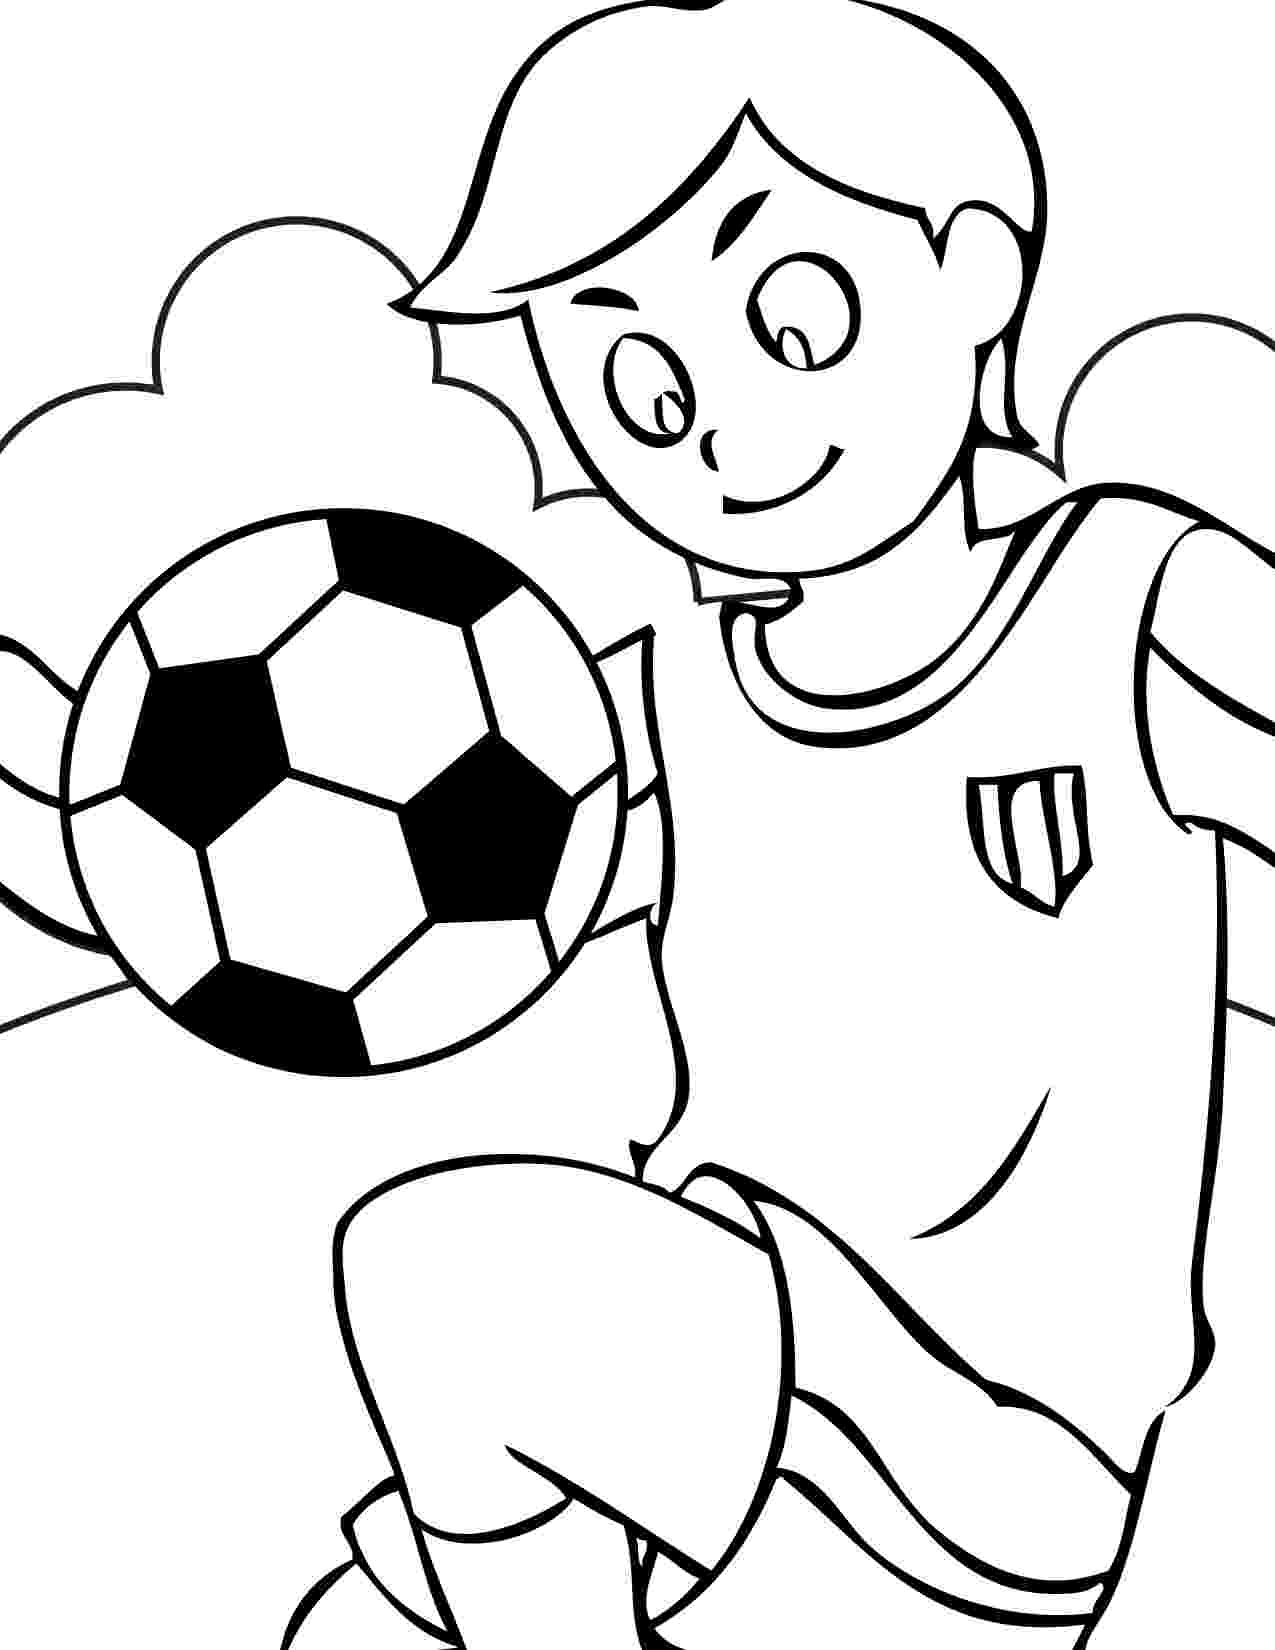 free sports coloring sheets free printable sports coloring pages for kids sports coloring sheets free